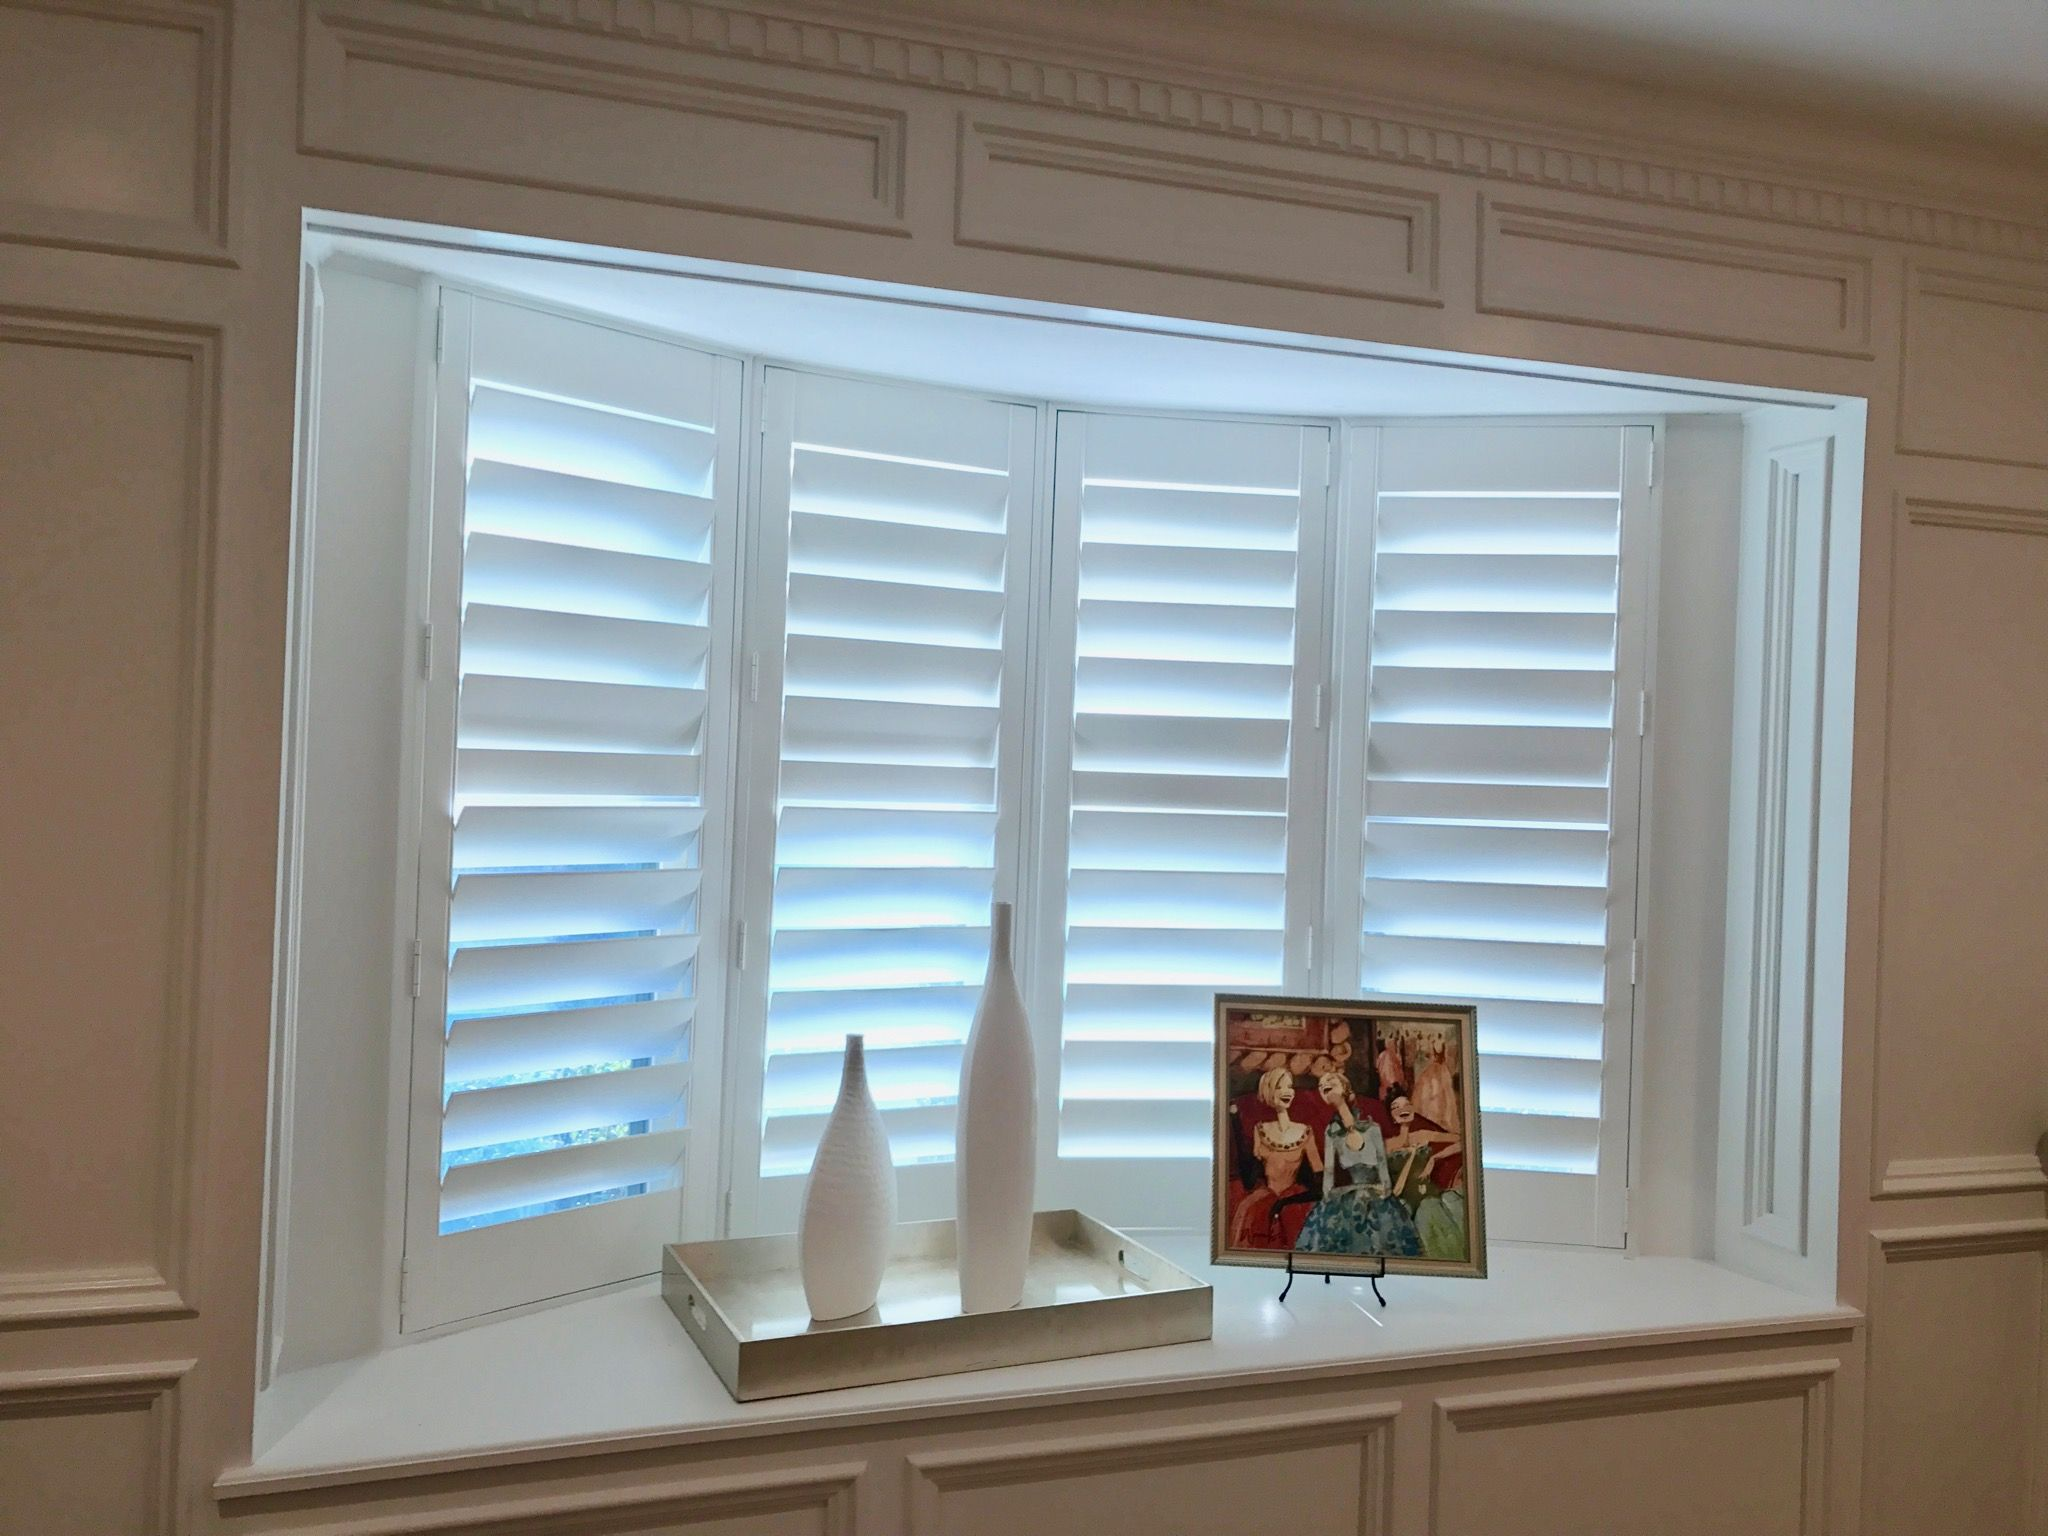 Bay window with 4 5 shutters